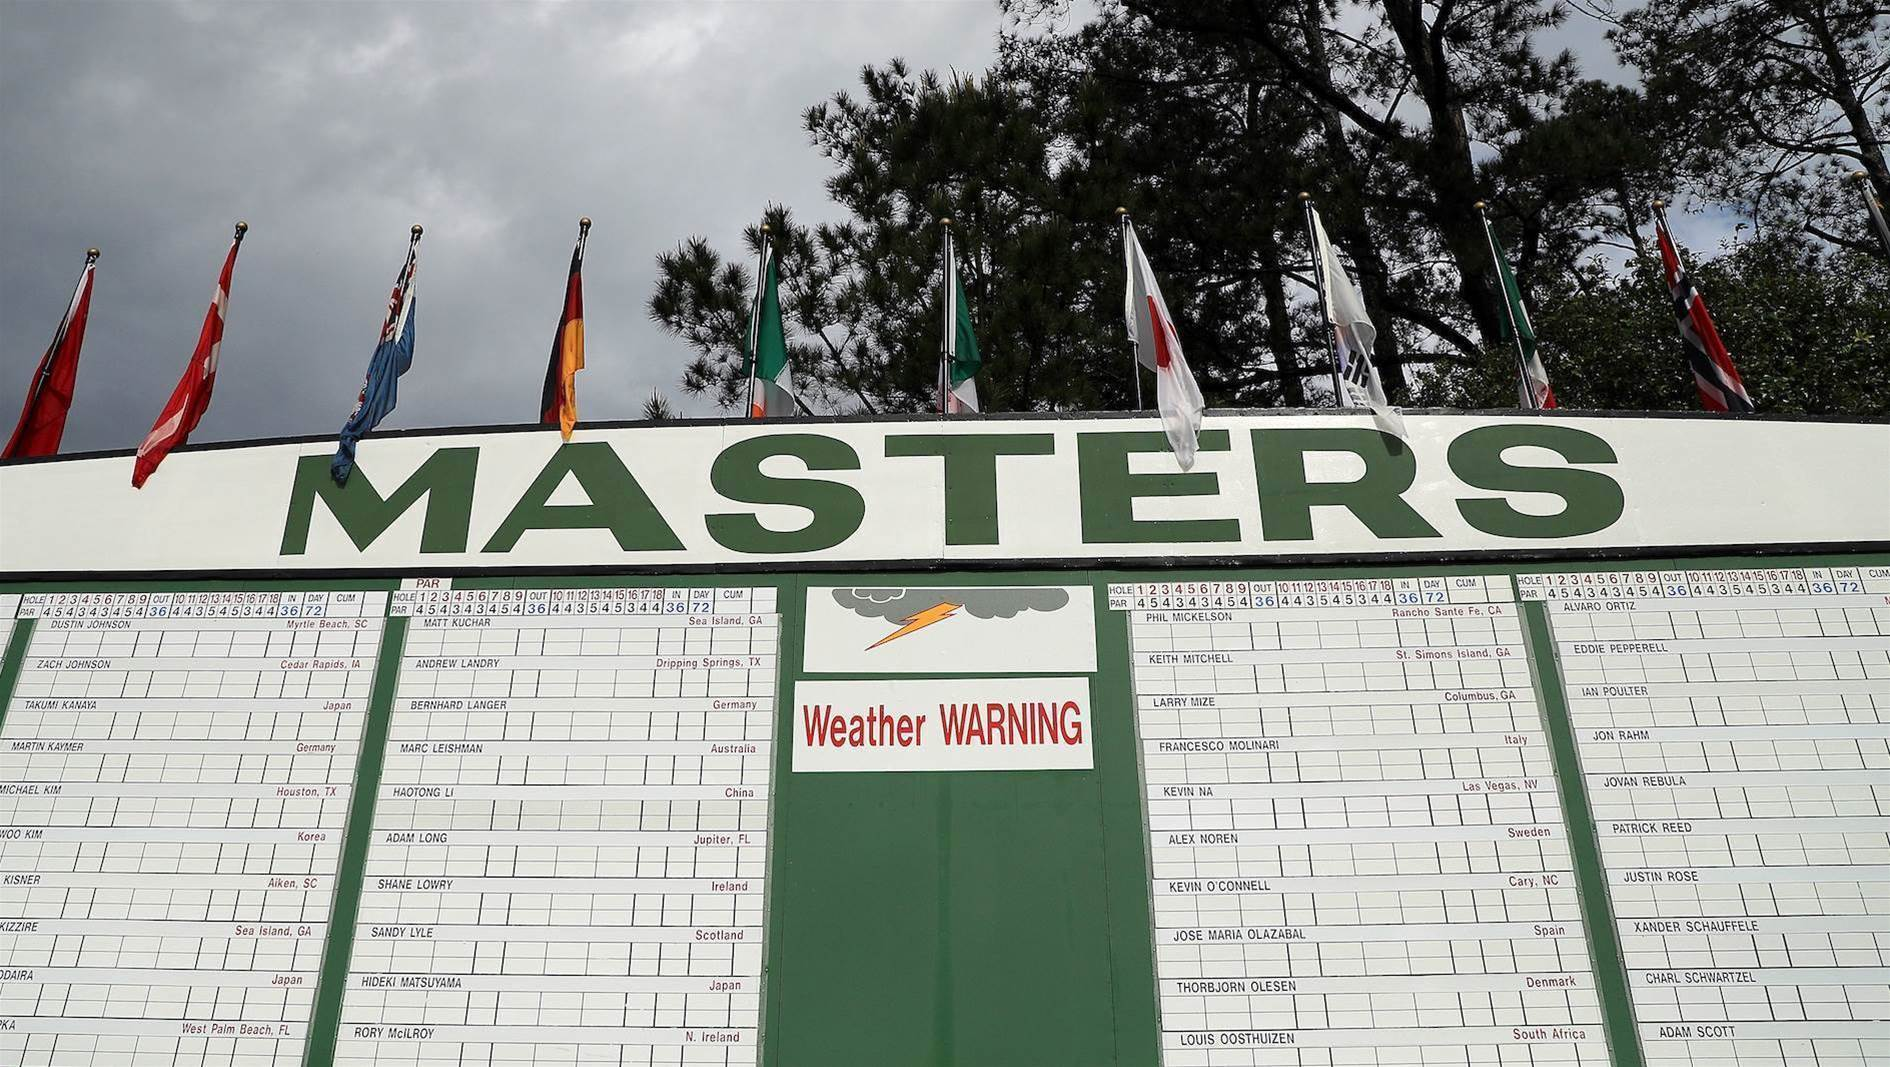 Masters Sunday set for early start and finish